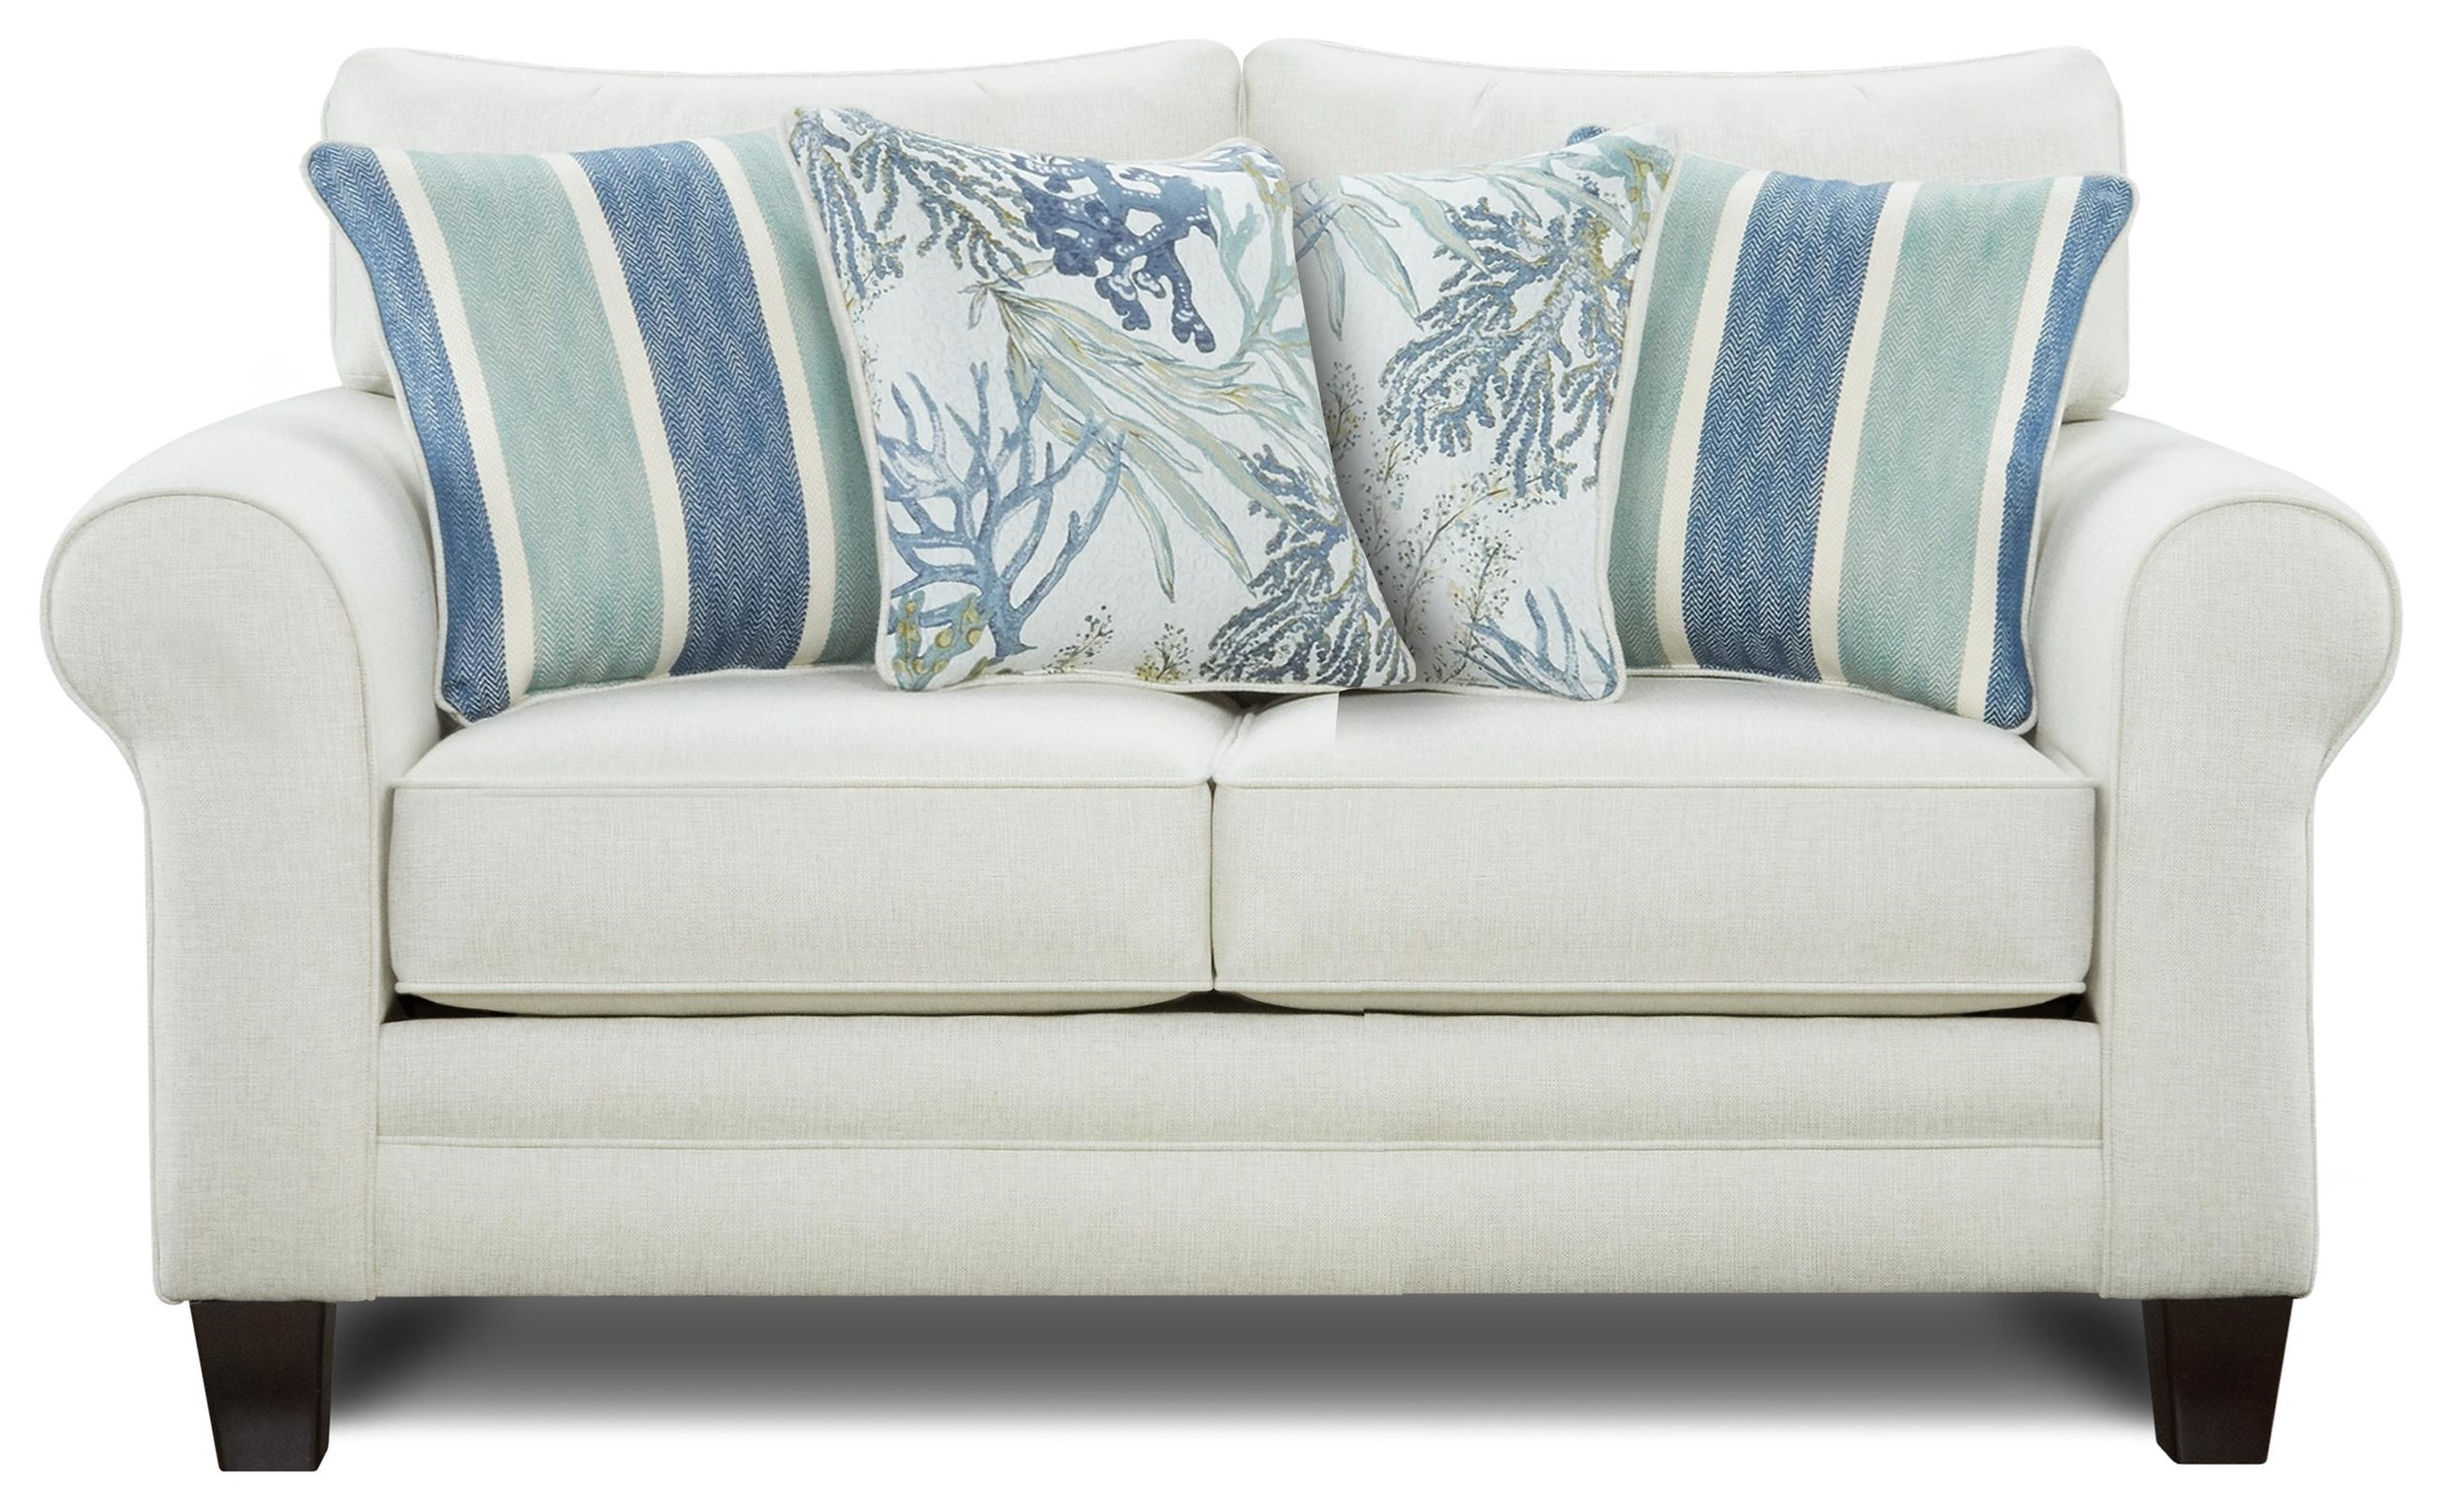 1140 Loveseat w/ Accent Pillows by Kent Home Furnishings at Johnny Janosik